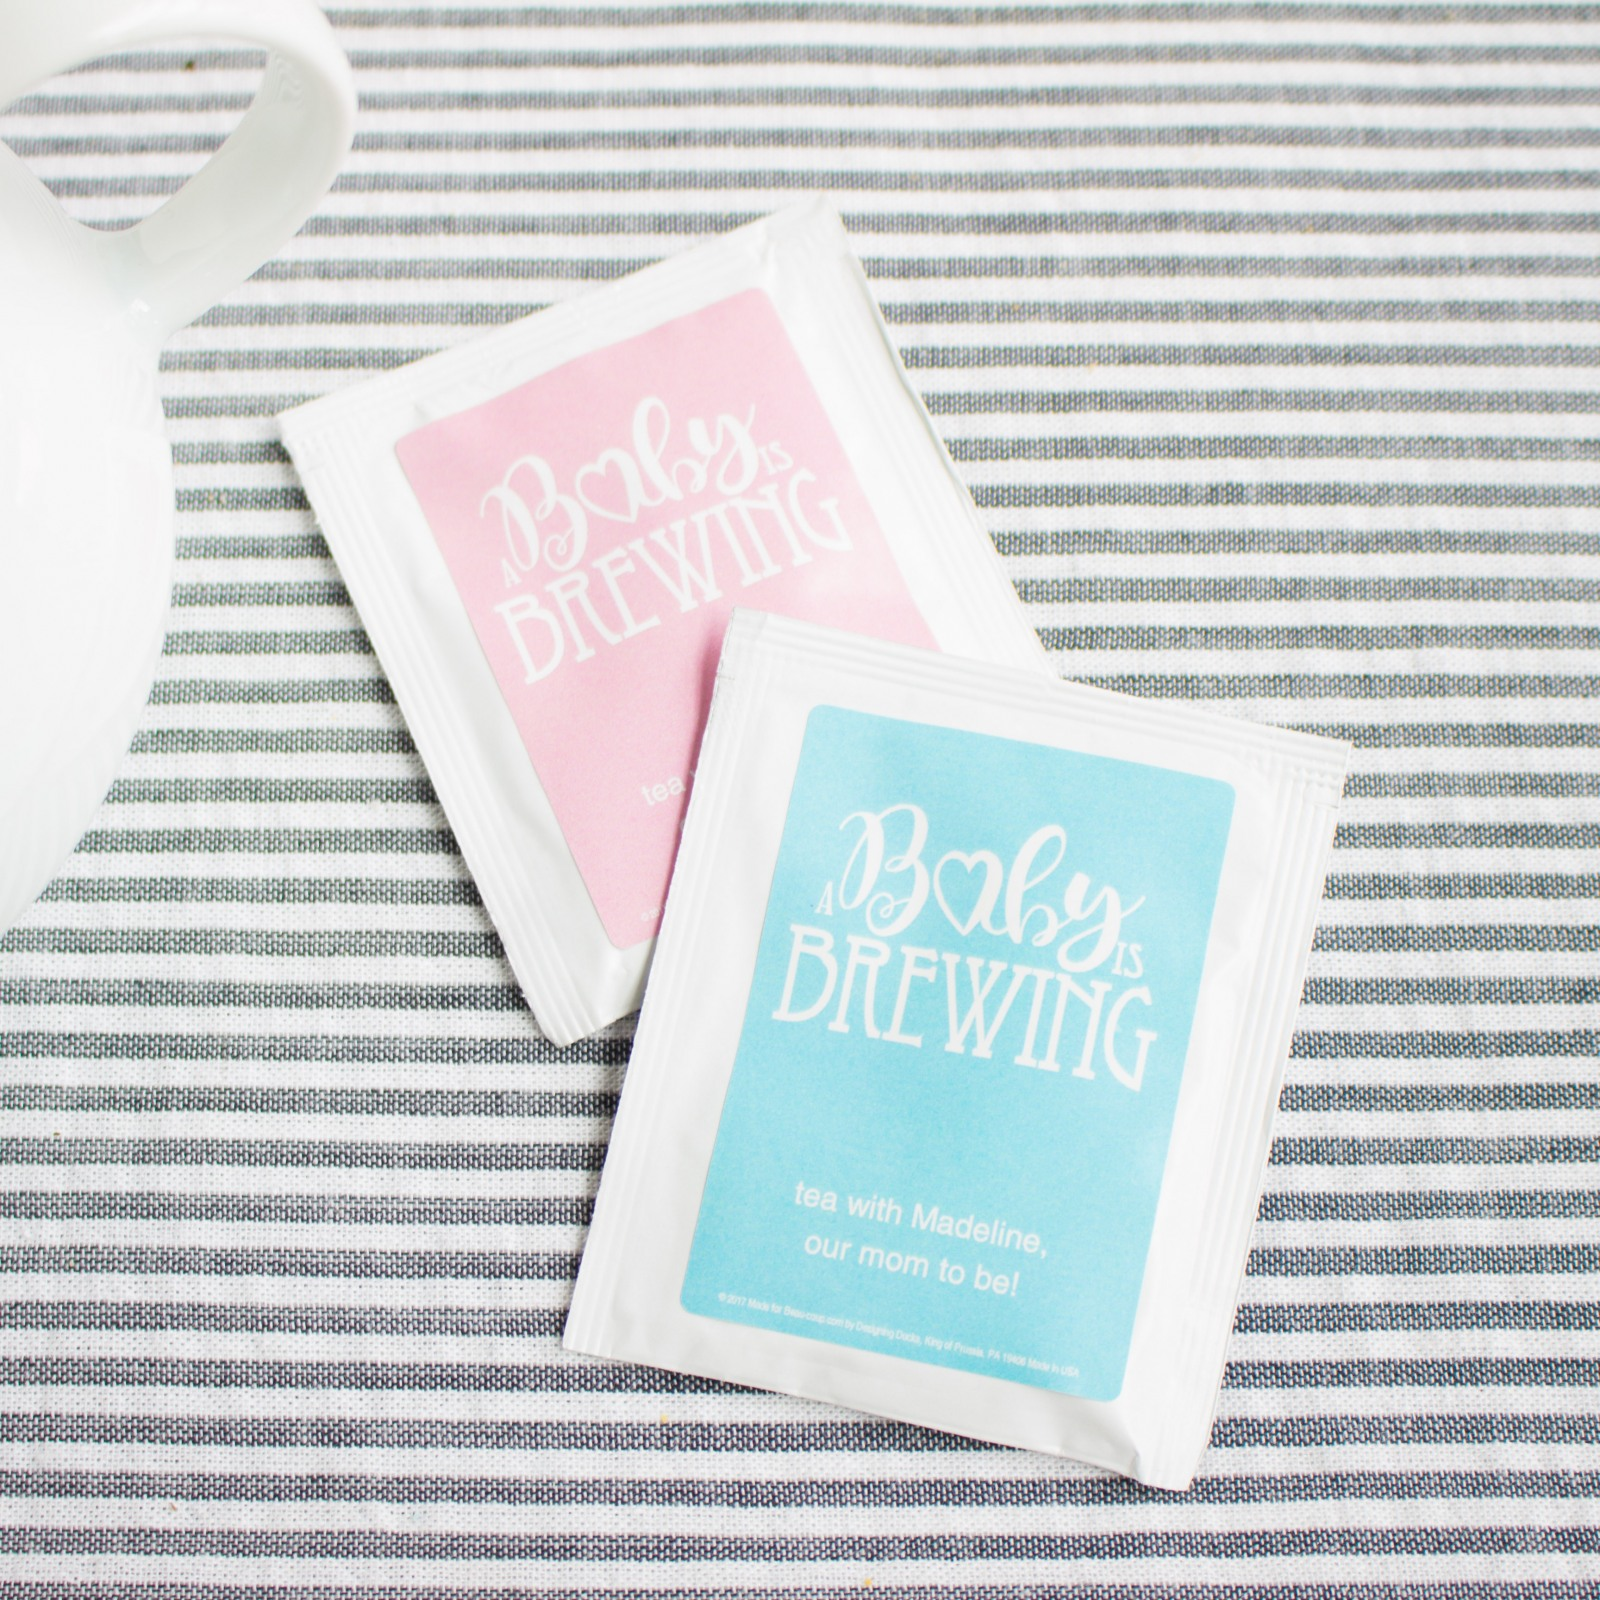 Personalized Baby is Brewing Tea Bags